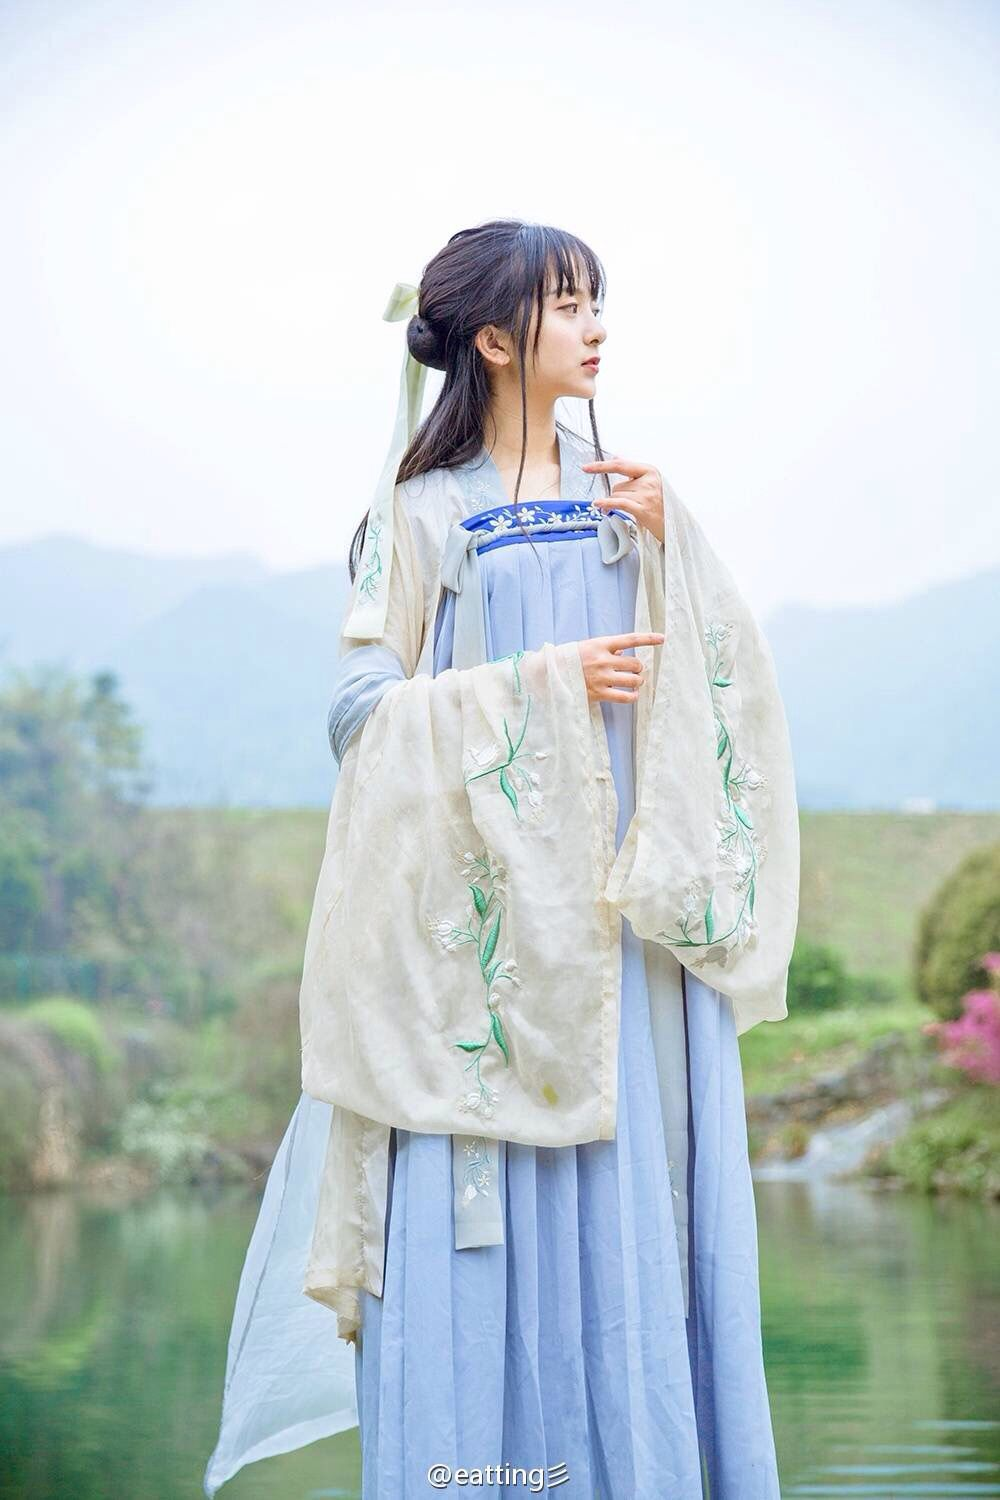 Traditional clothing special style, beautiful girl and